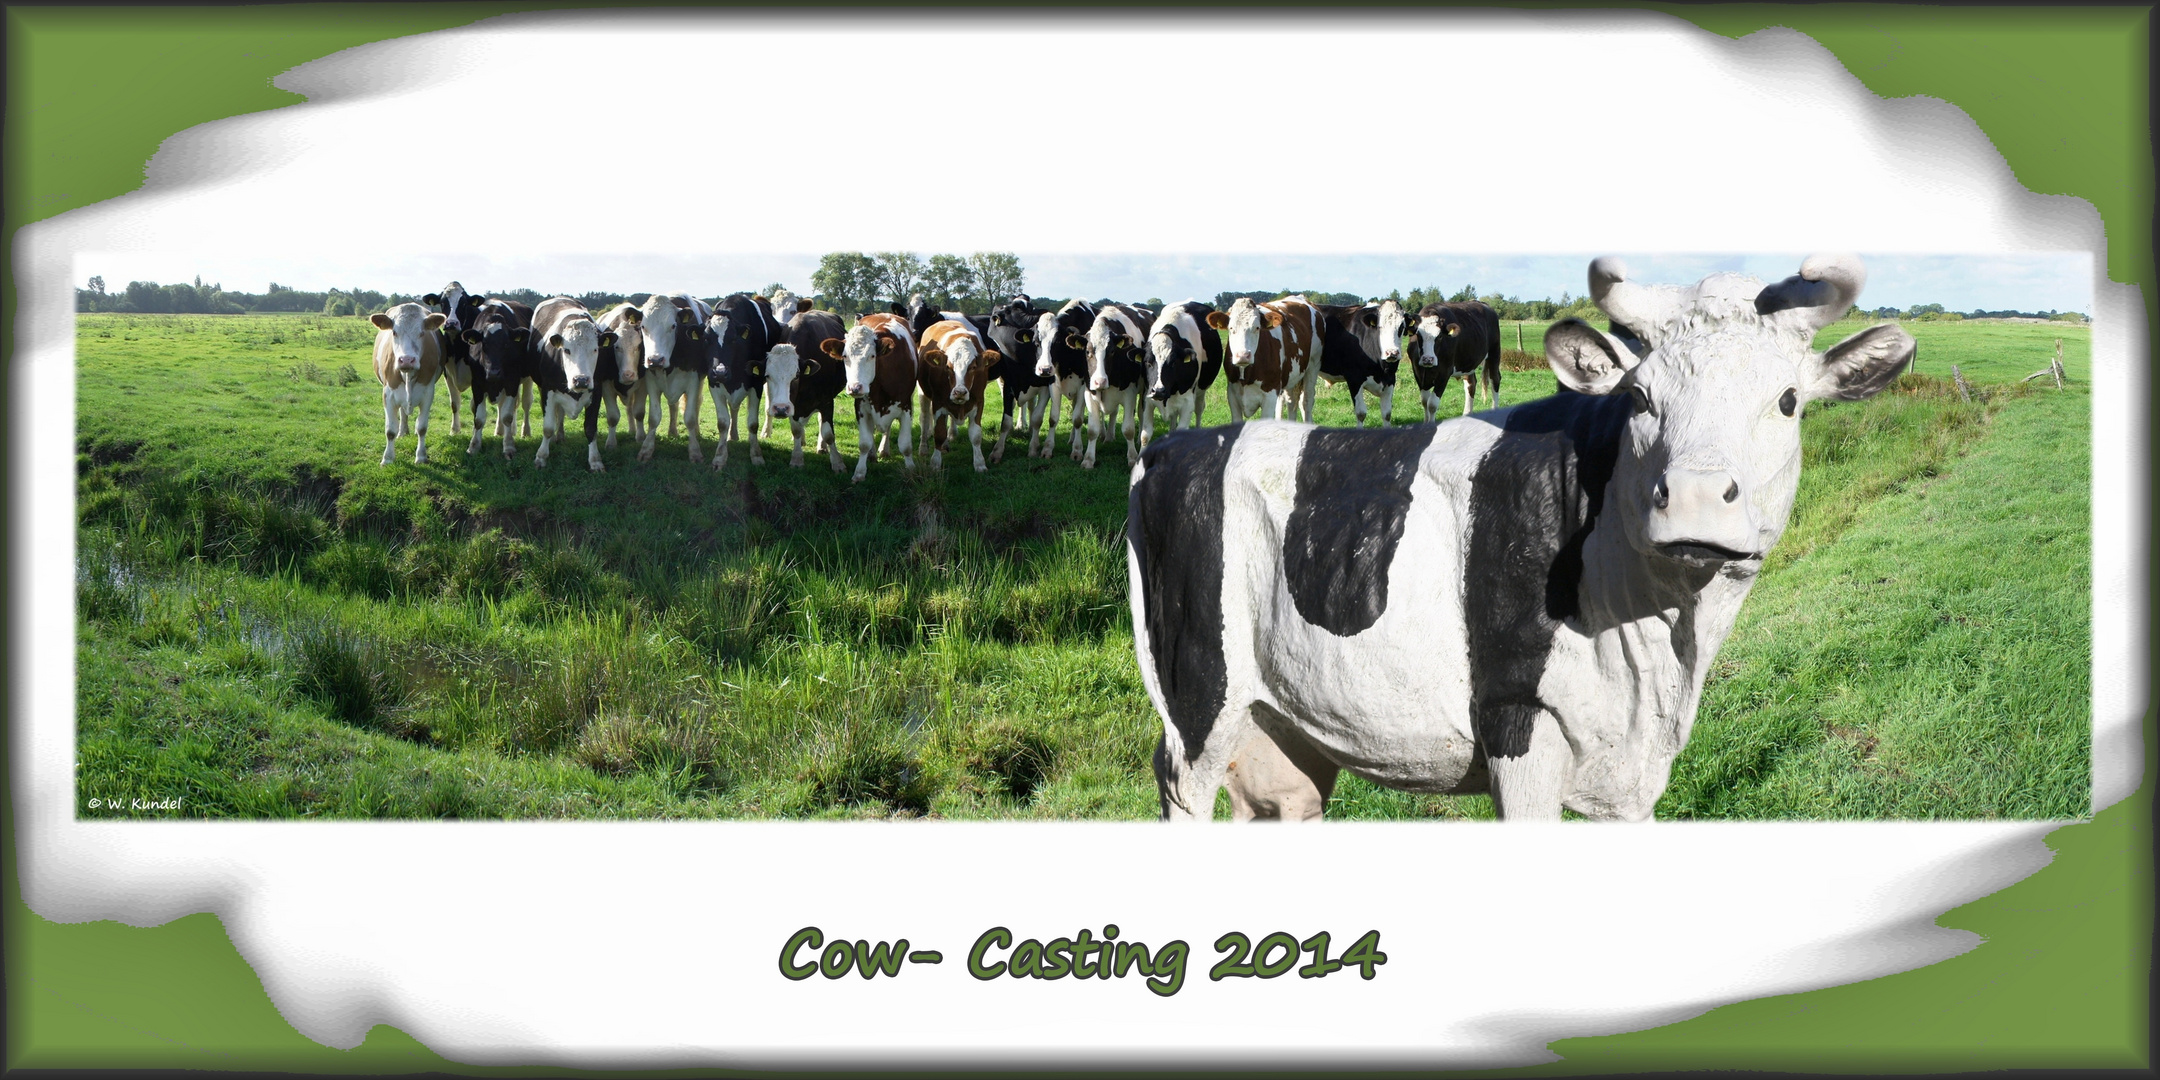 Cow-casting 2014 - Silicone wins